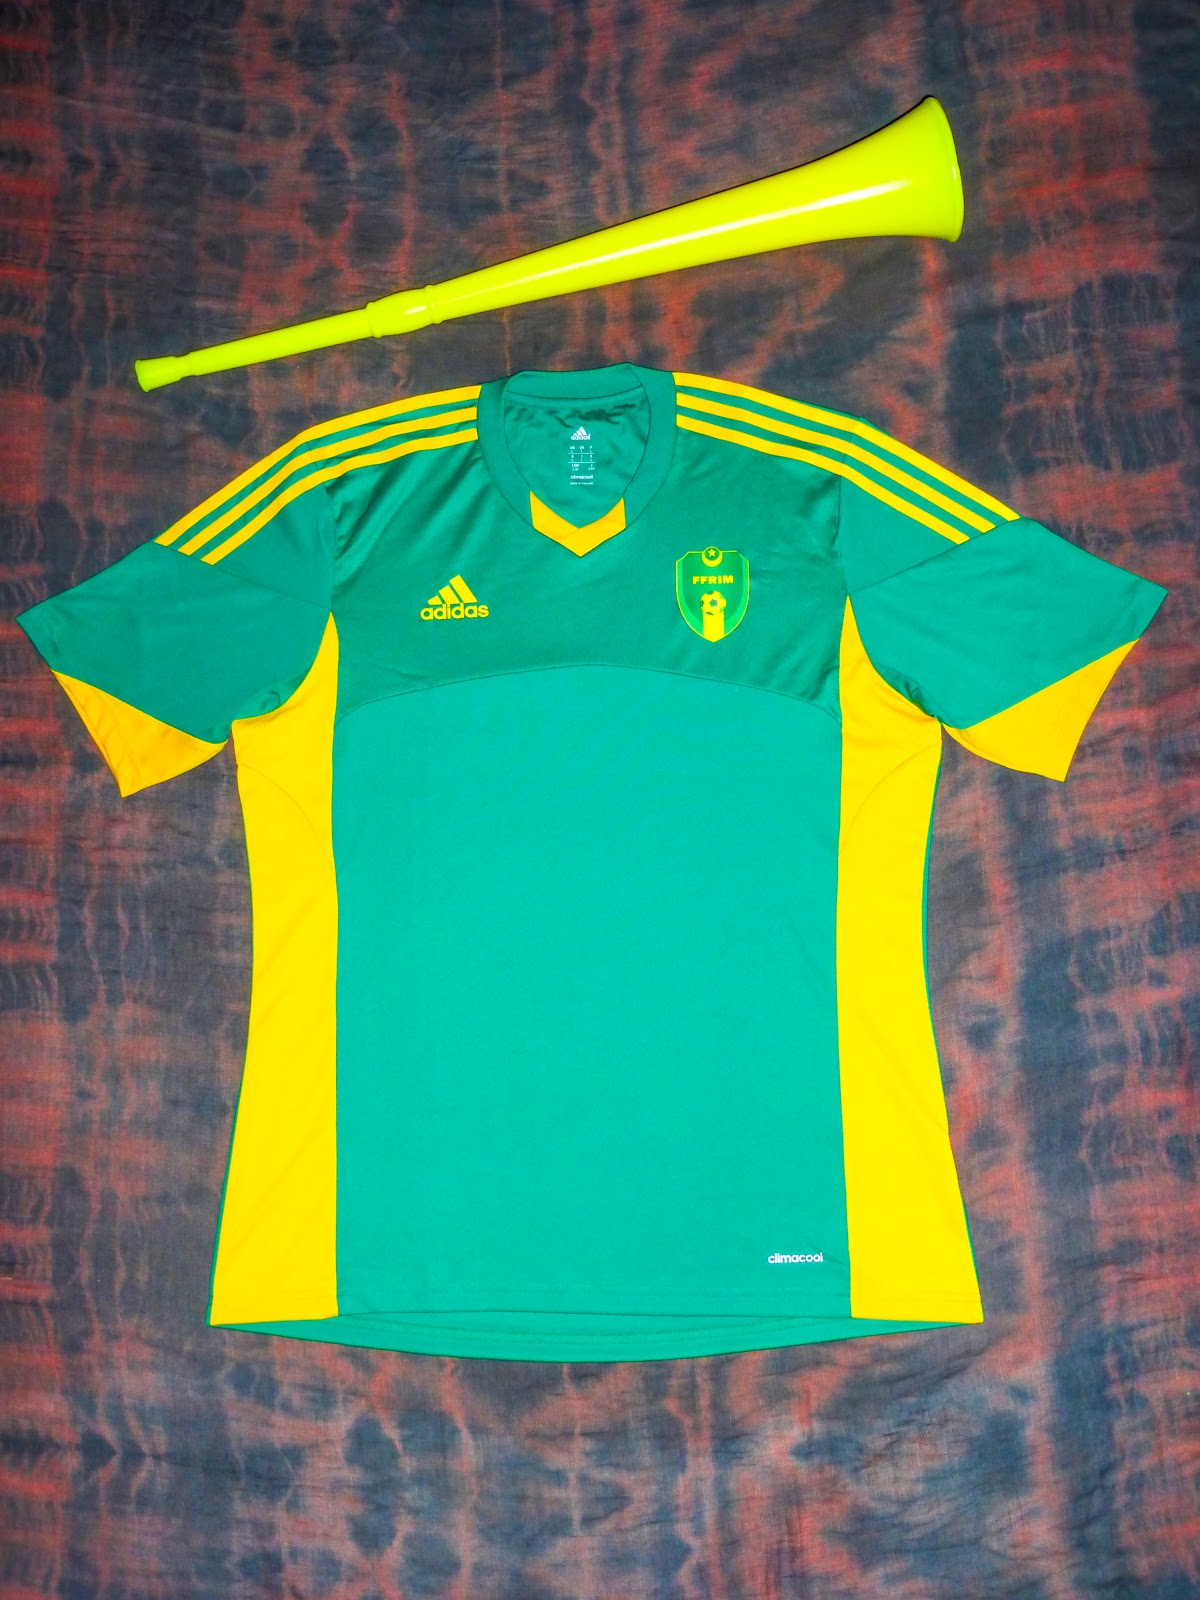 ceb5fad89 Football Shirts 2013 14 – EDGE Engineering and Consulting Limited